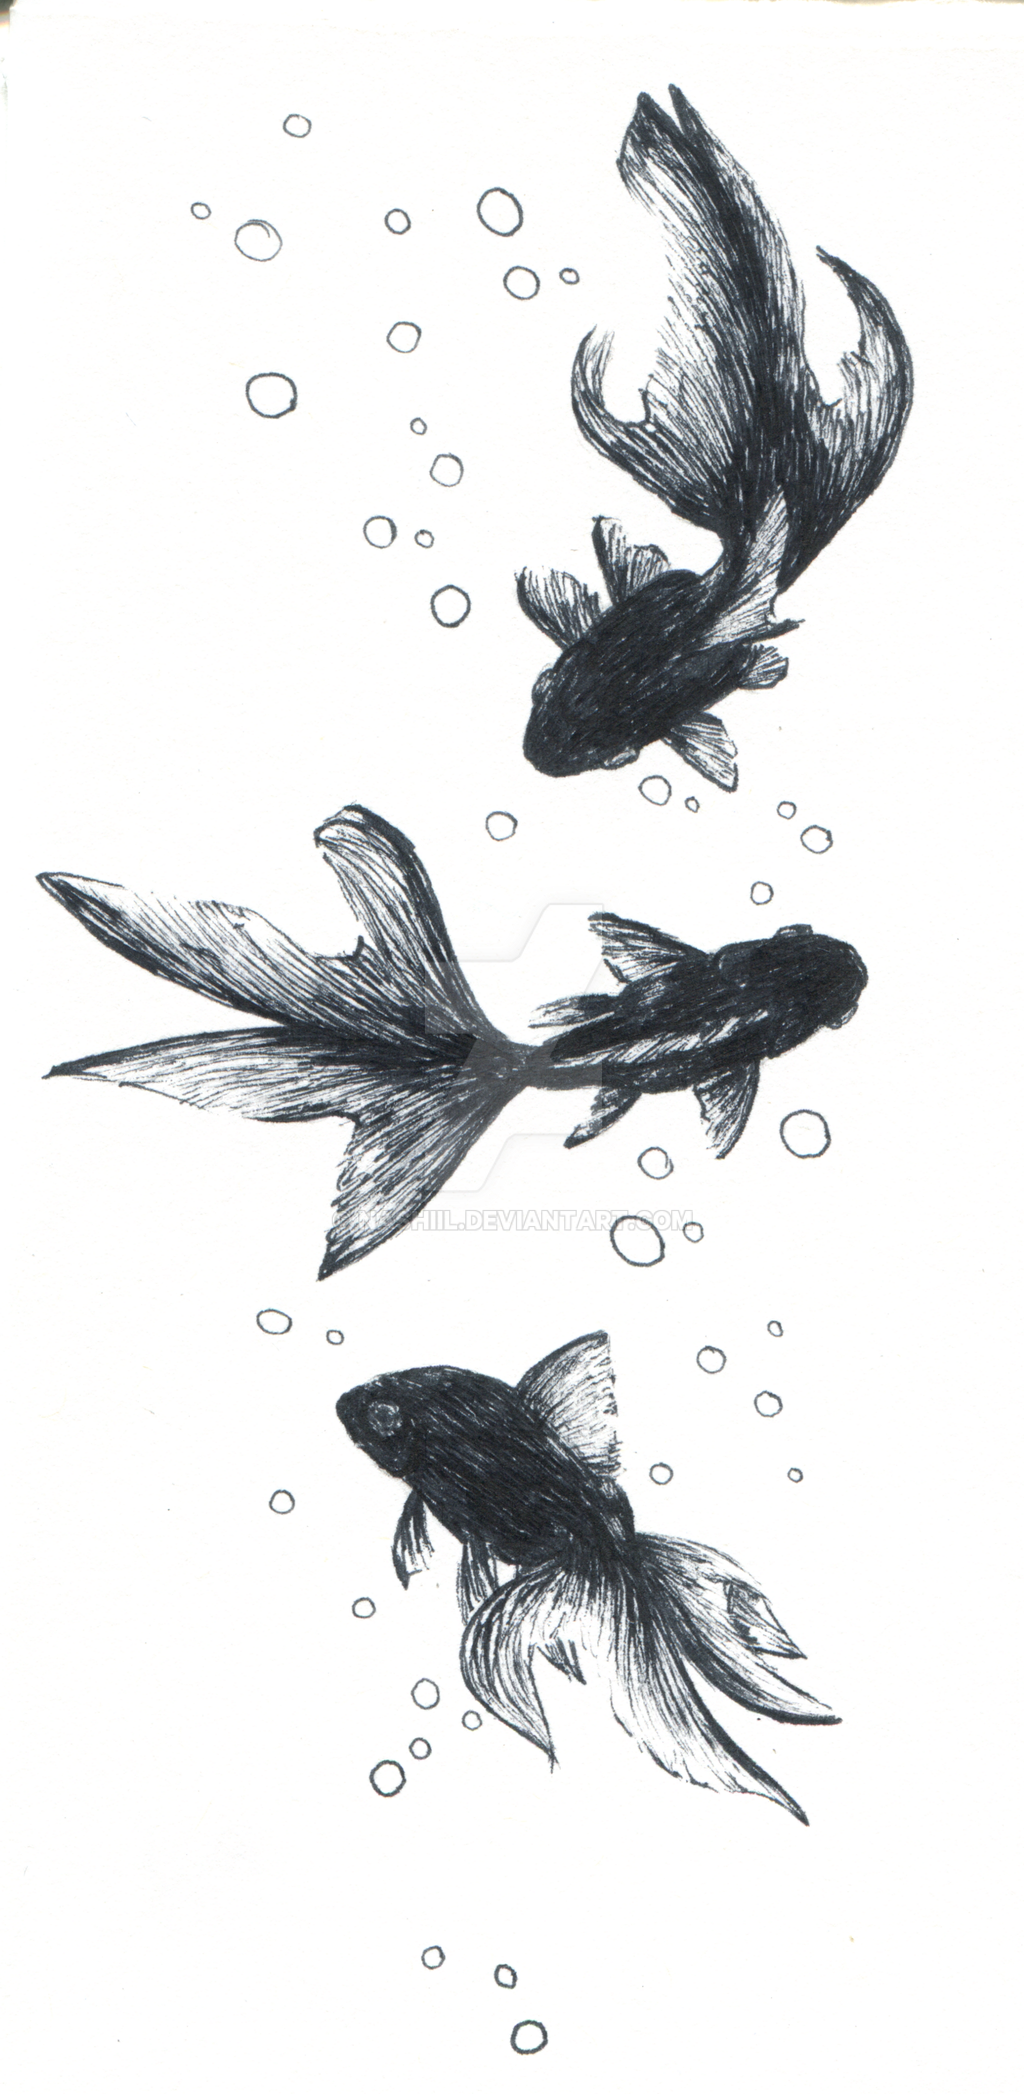 Pen fish sketch by nashiil on deviantart for Wyoming game and fish draw results